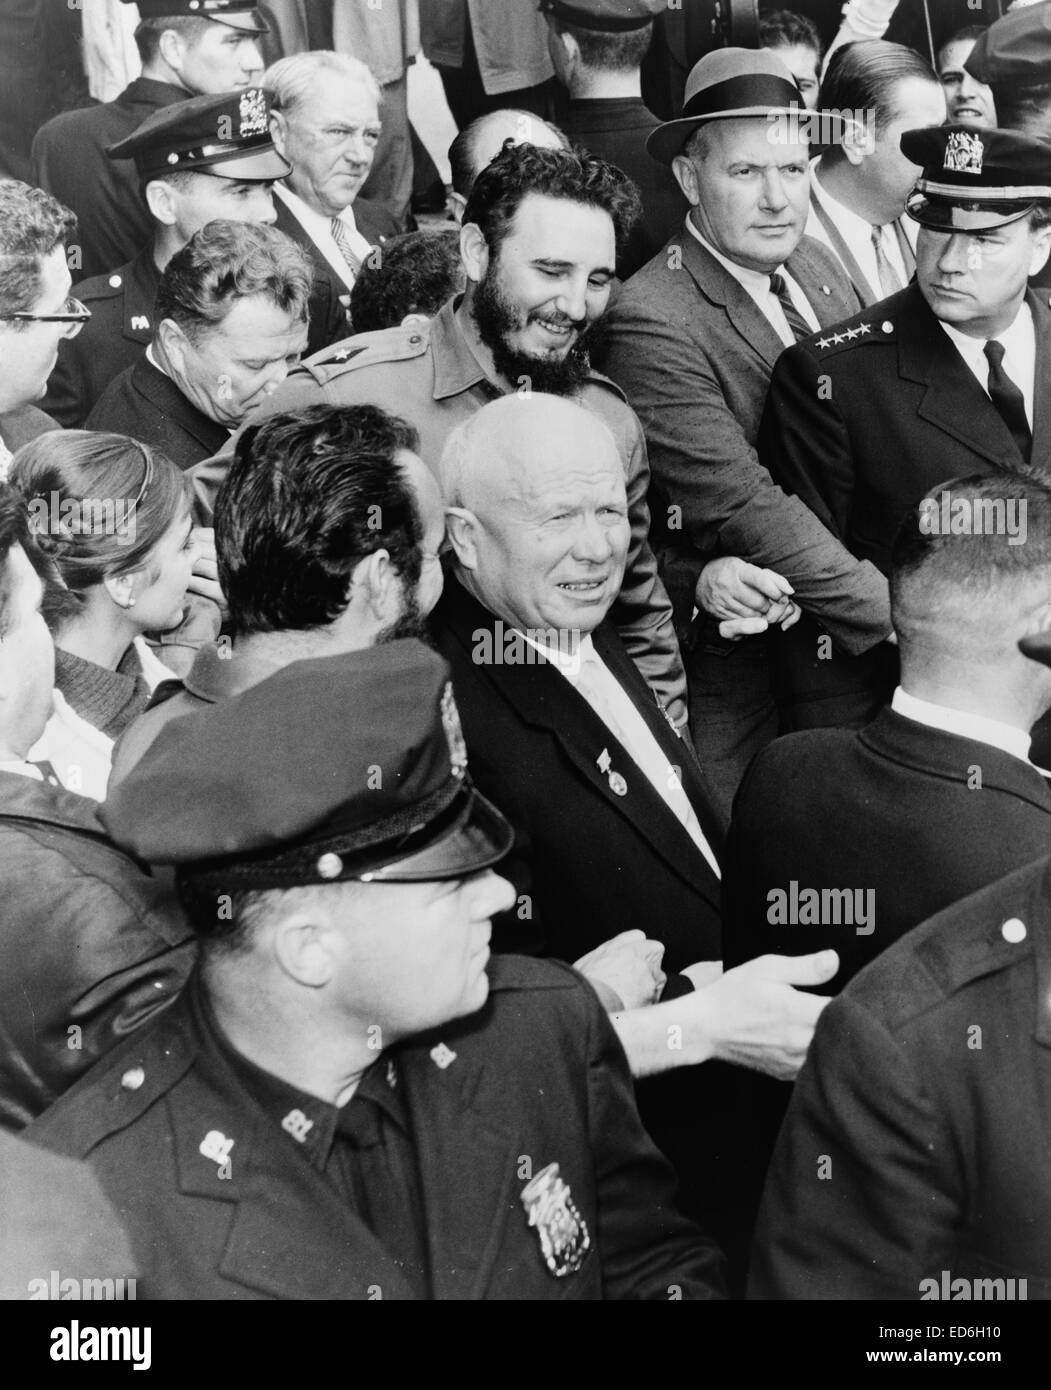 Fidel Castro and Nikita Khrushchev make their way in the midst of a crowd, 1960 - Stock Image